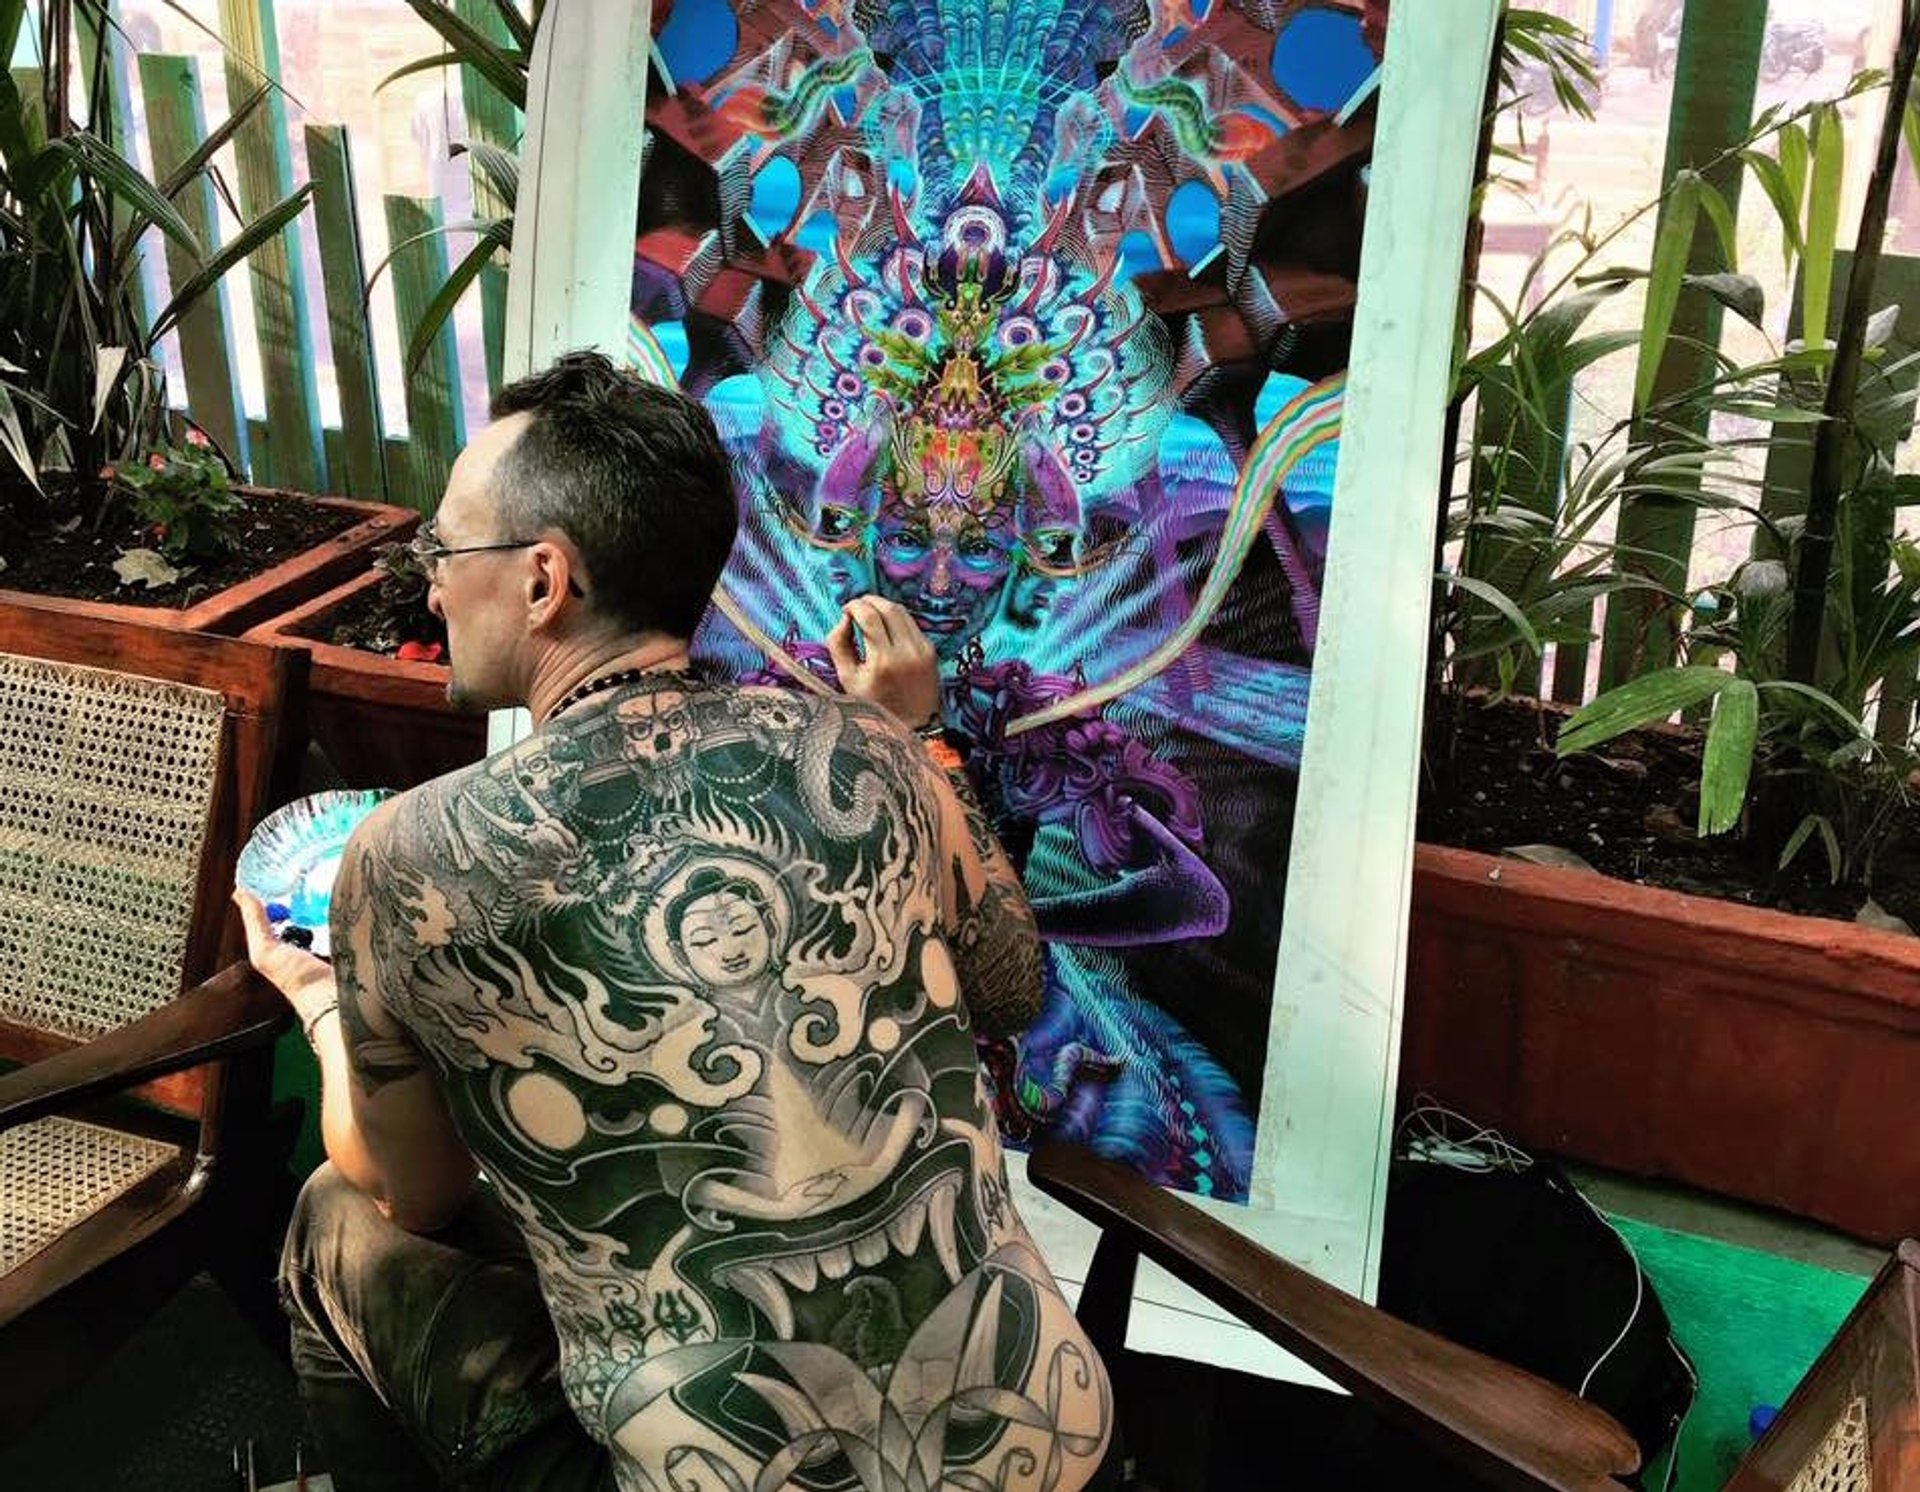 Goa Tattoo Festival in Goa 2020 - Best Time